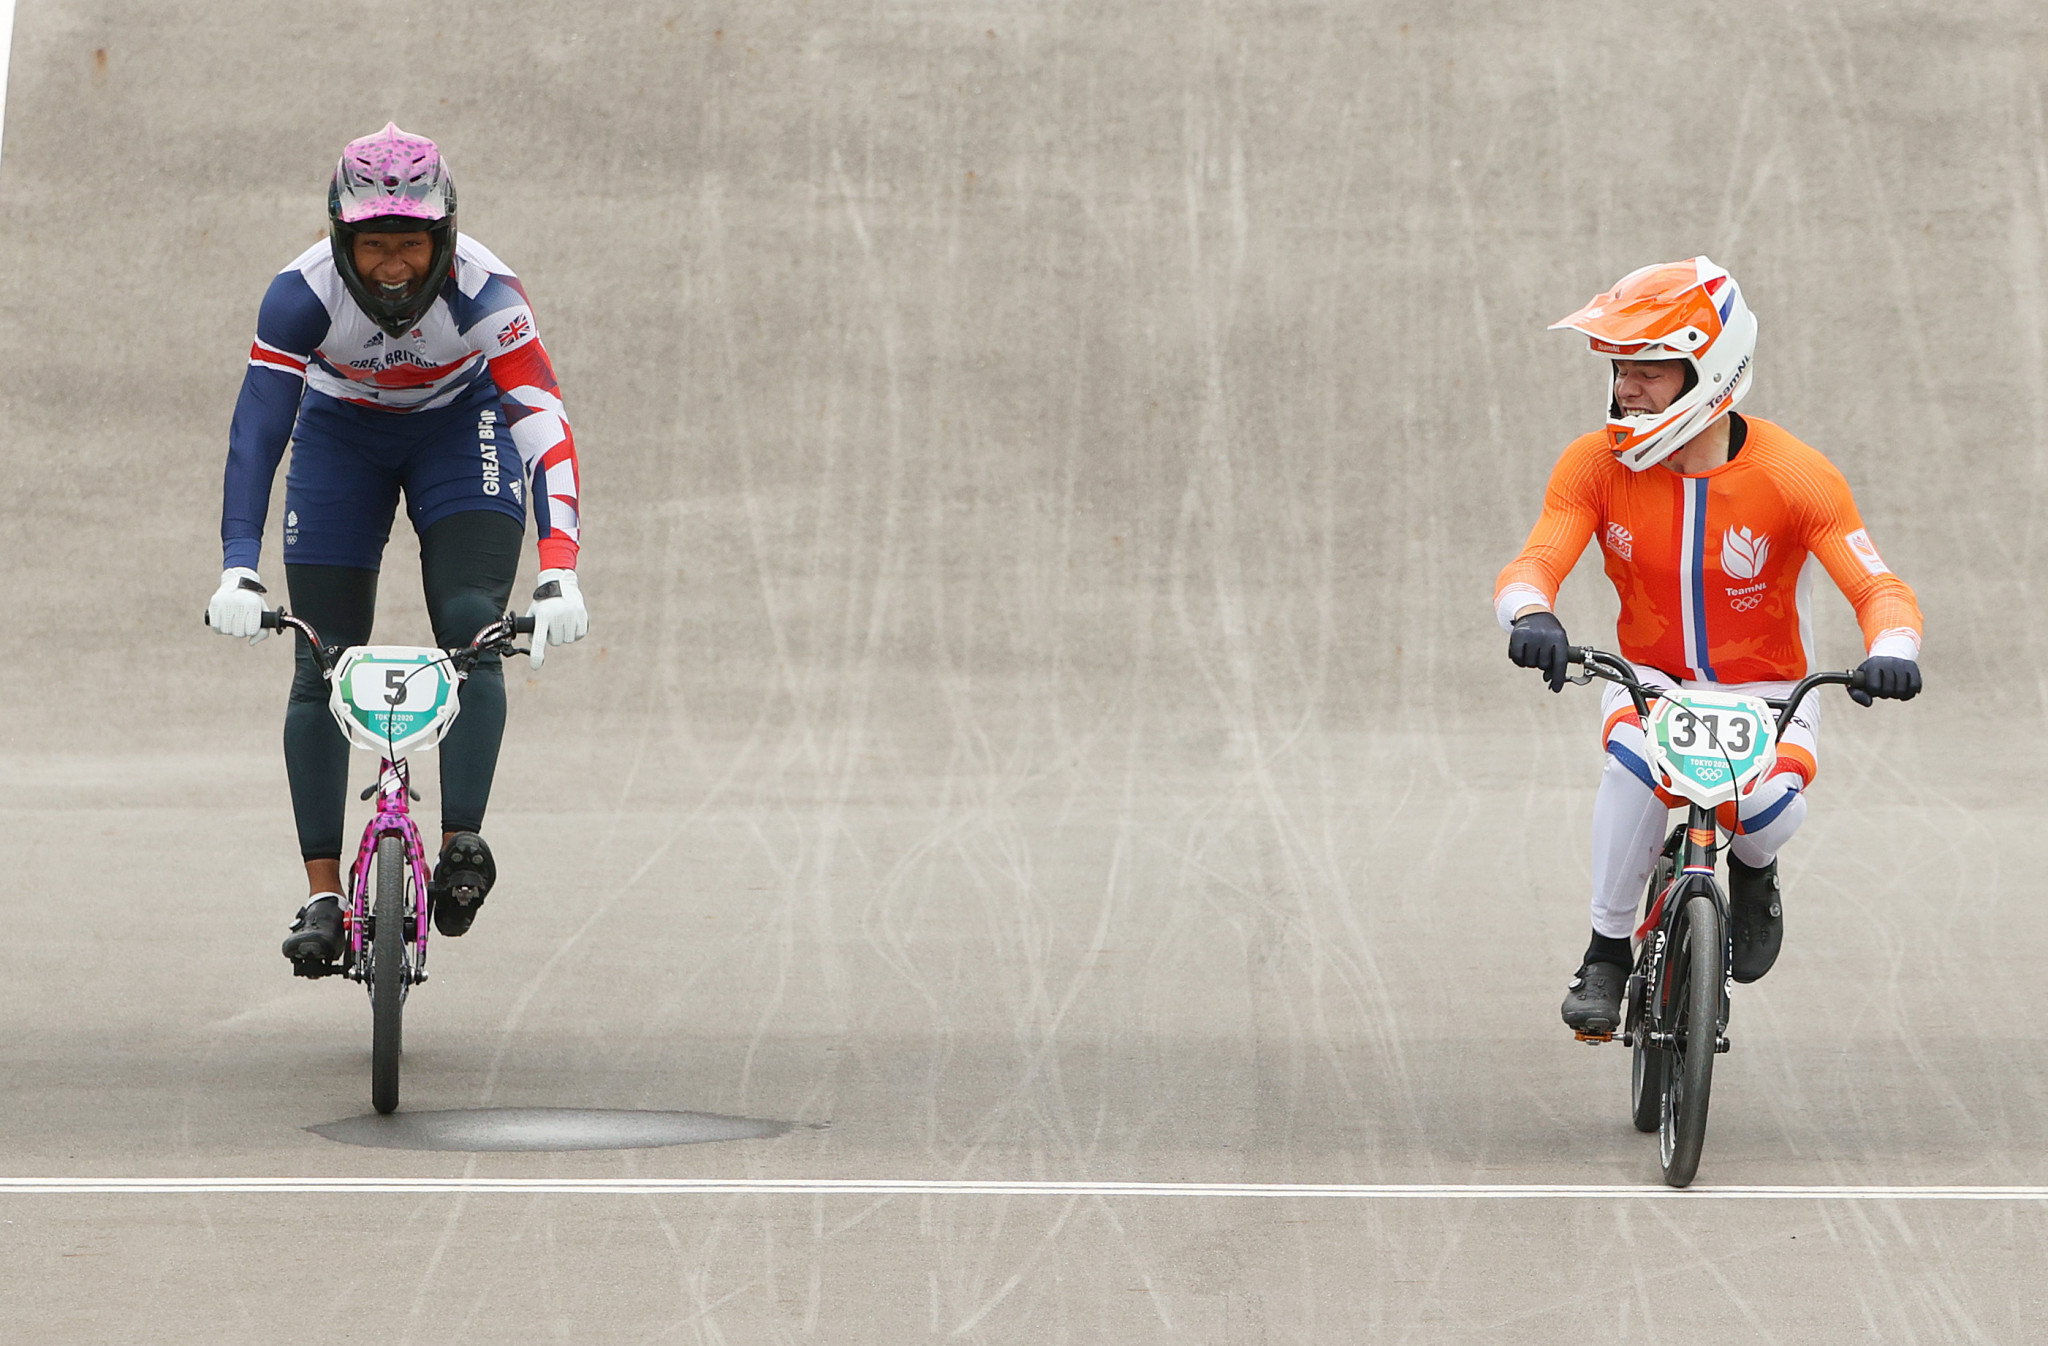 The Netherlands' Niek Kimmann triumphed in the men's BMX competition ©Getty Images